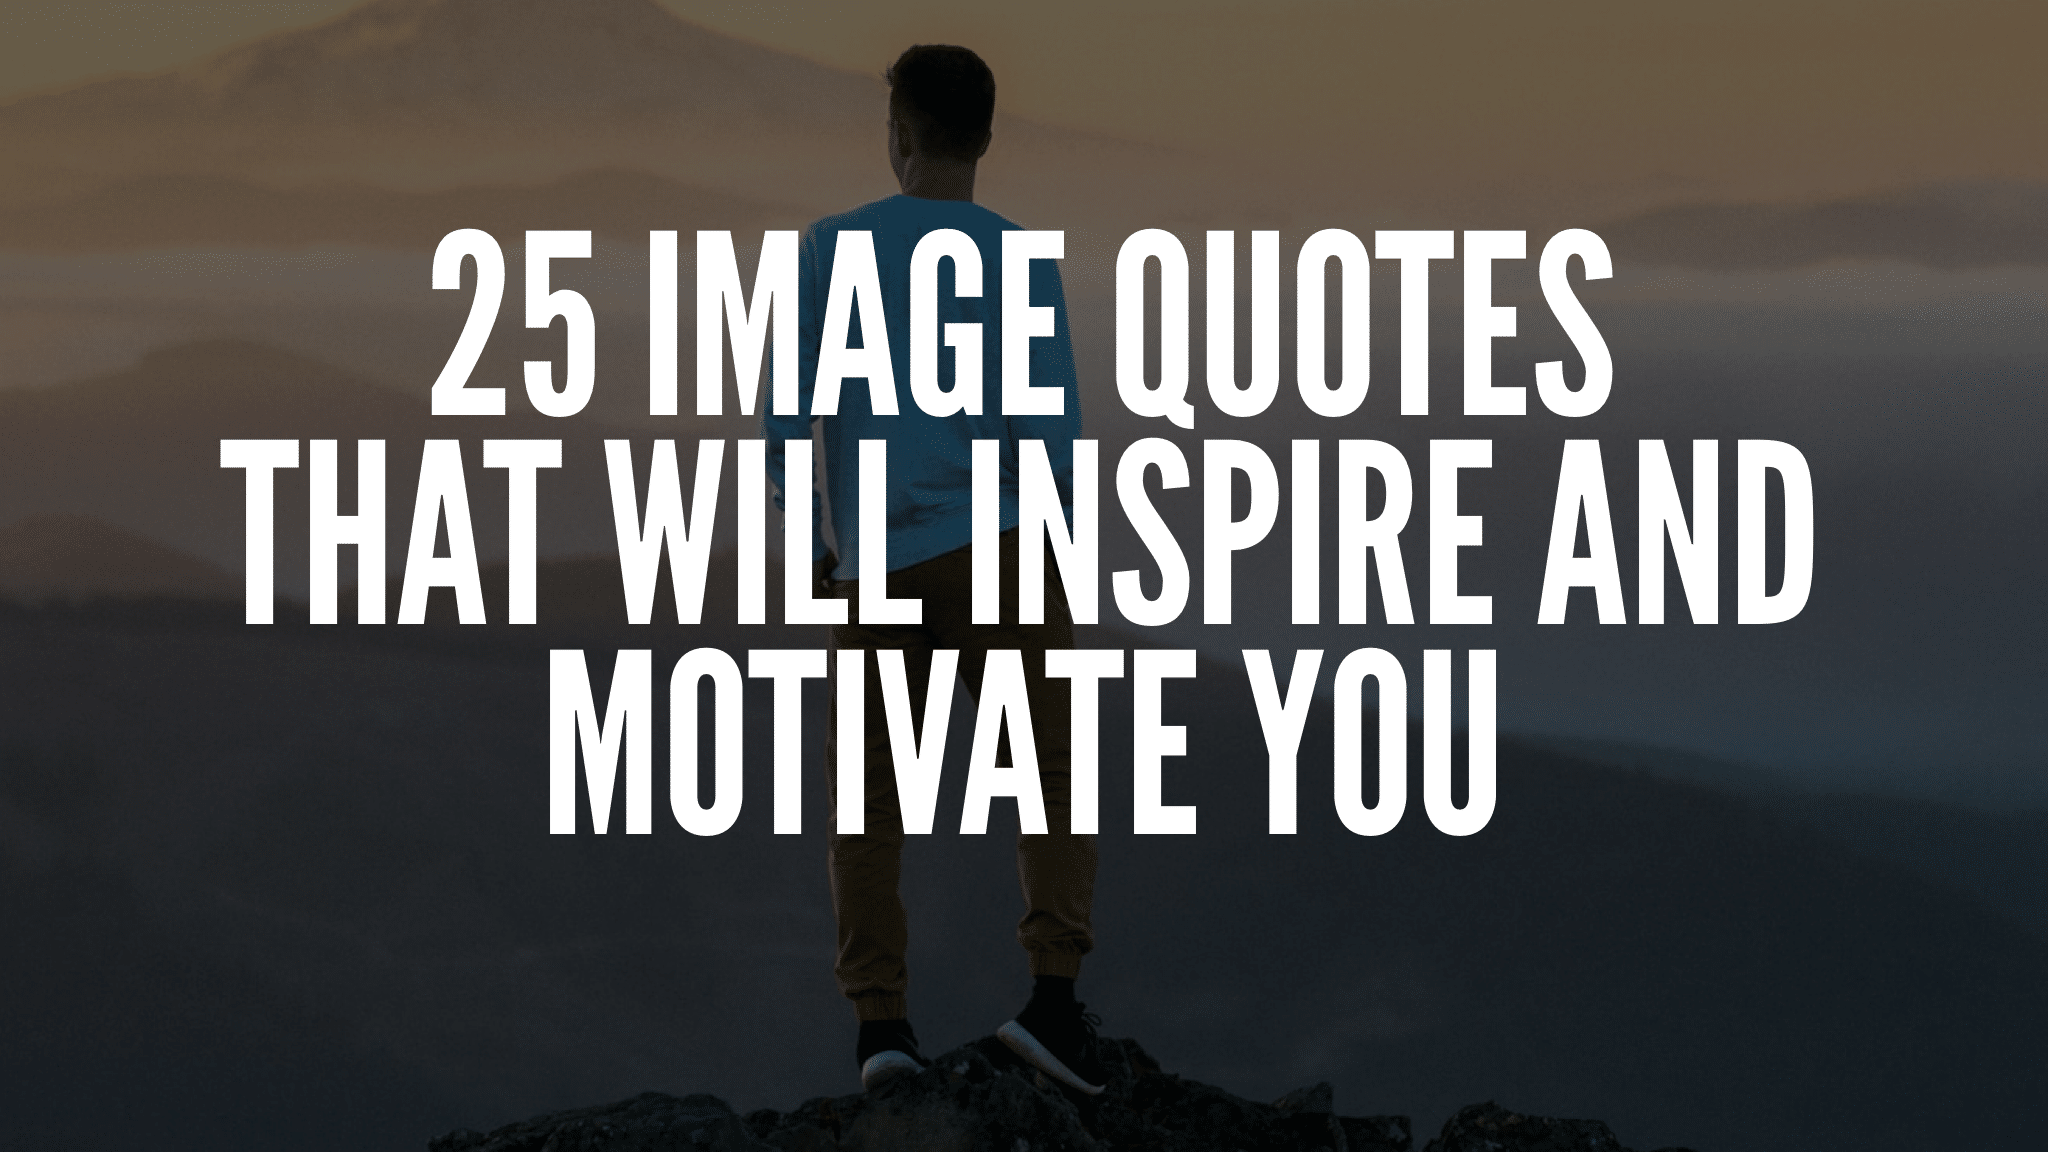 25 Image Quotes That Will Inspire And Motivate You